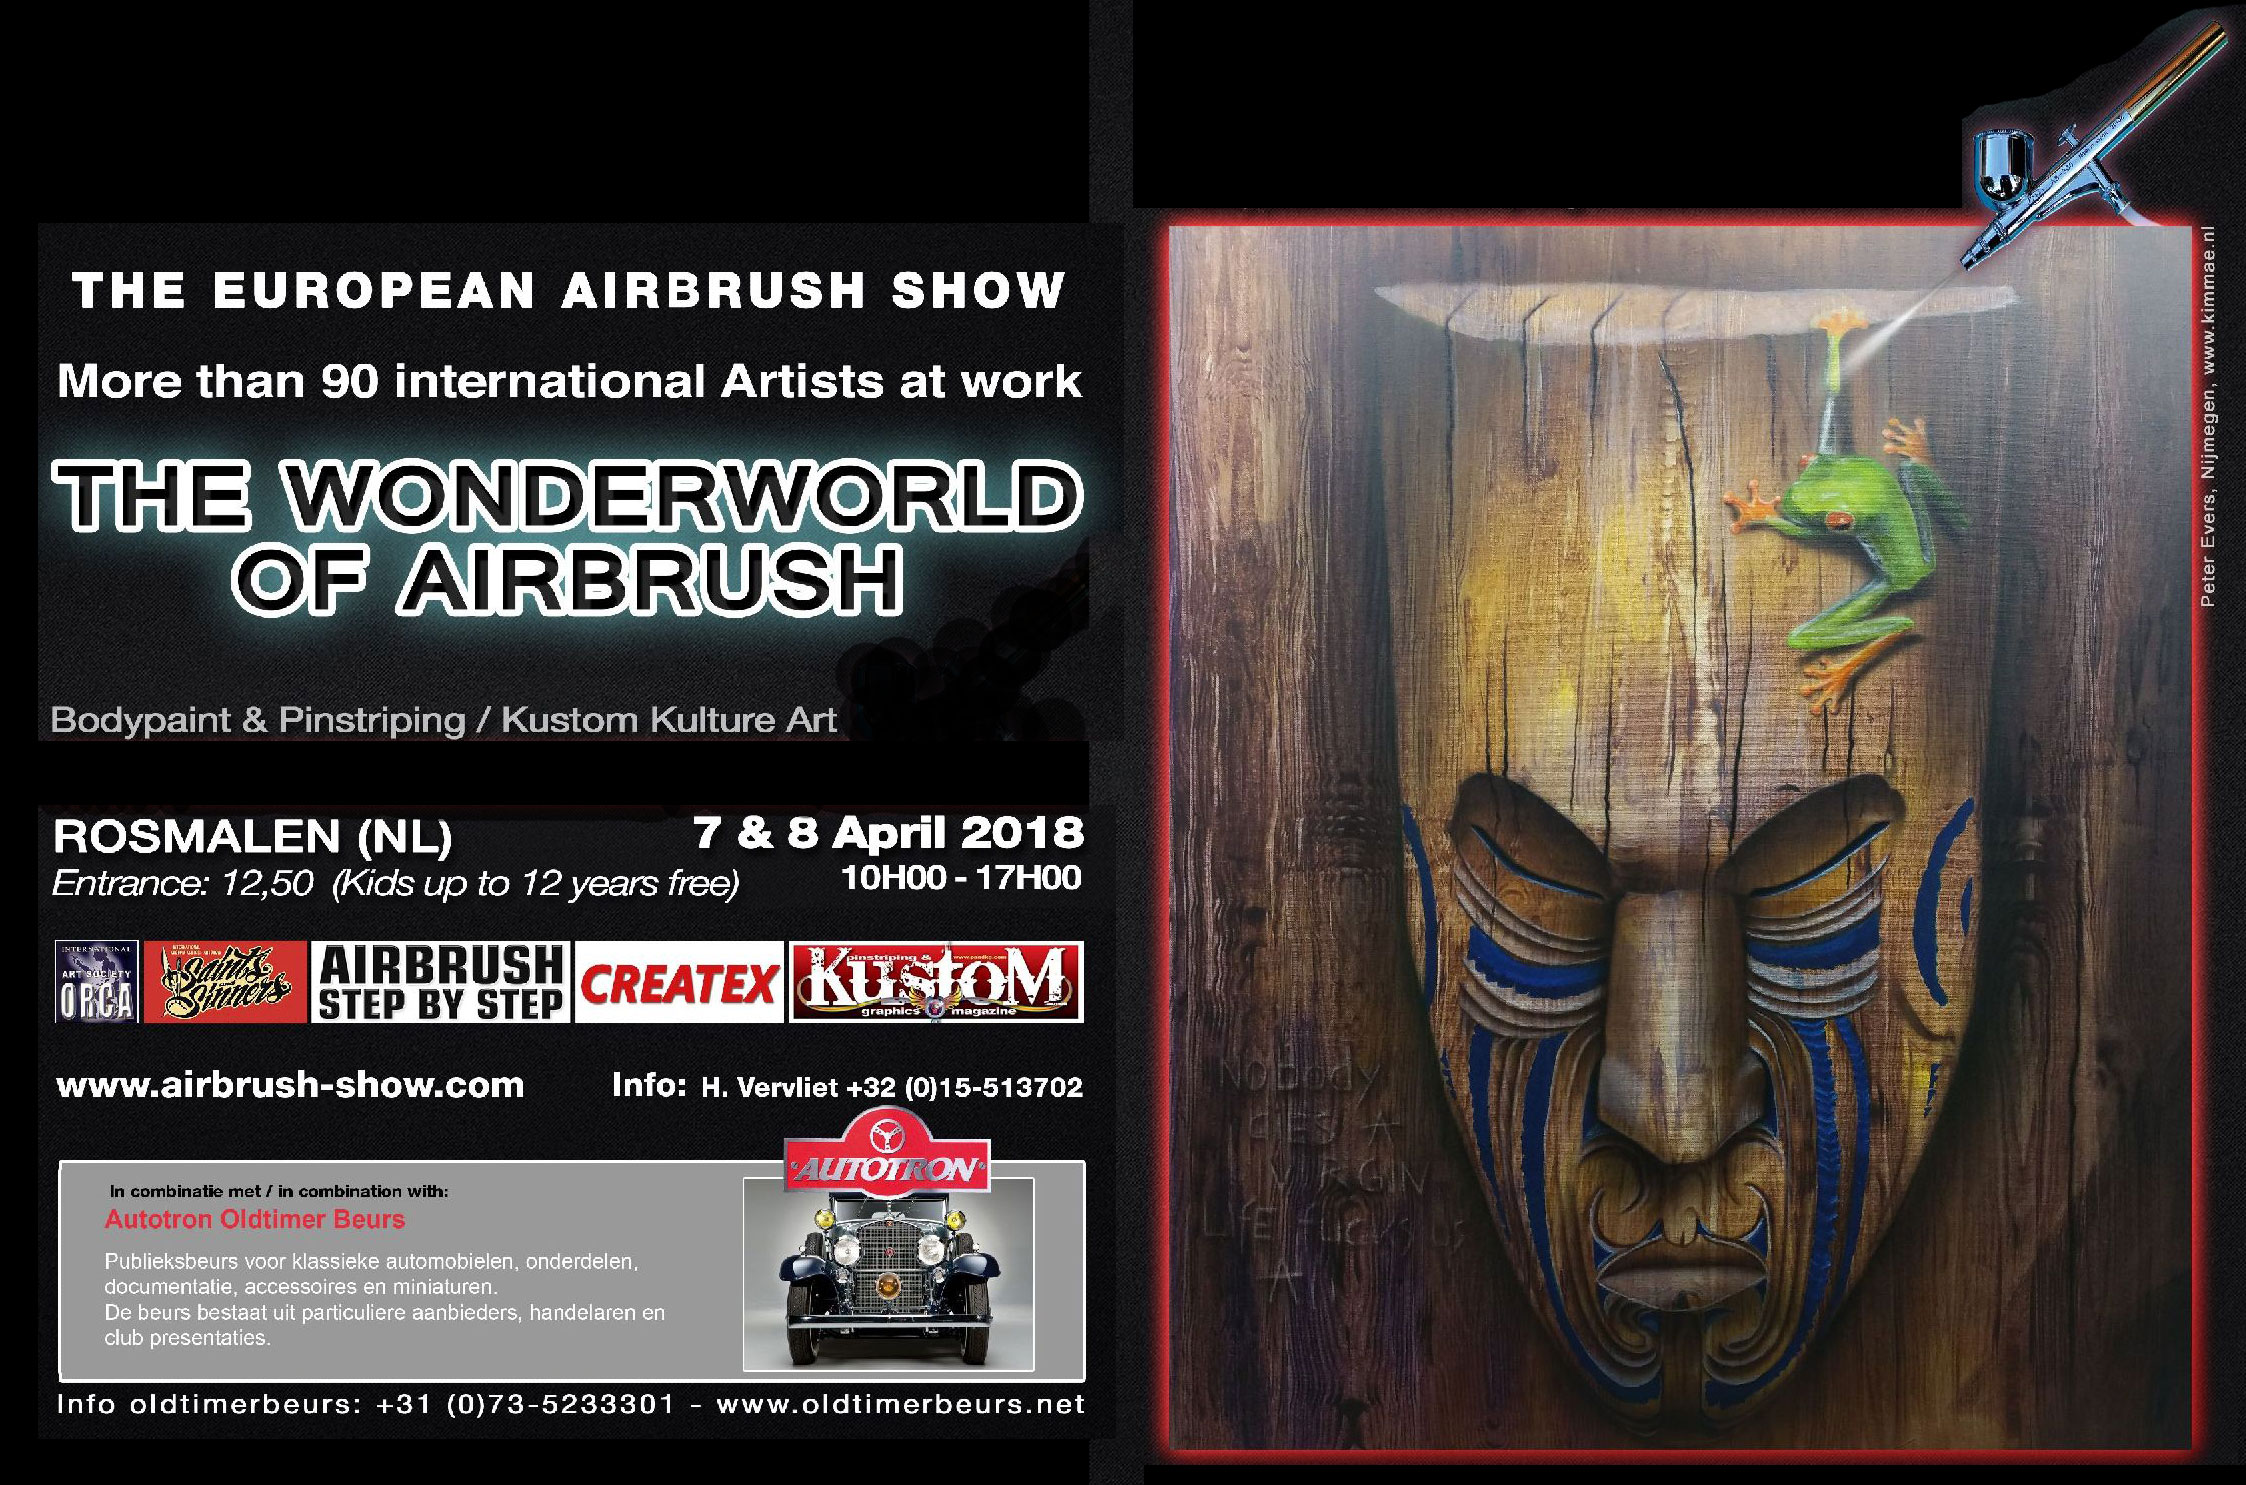 The Wonderworld of Airbrush in Rosmalen: Airbrush meets Kustom Kulture Art